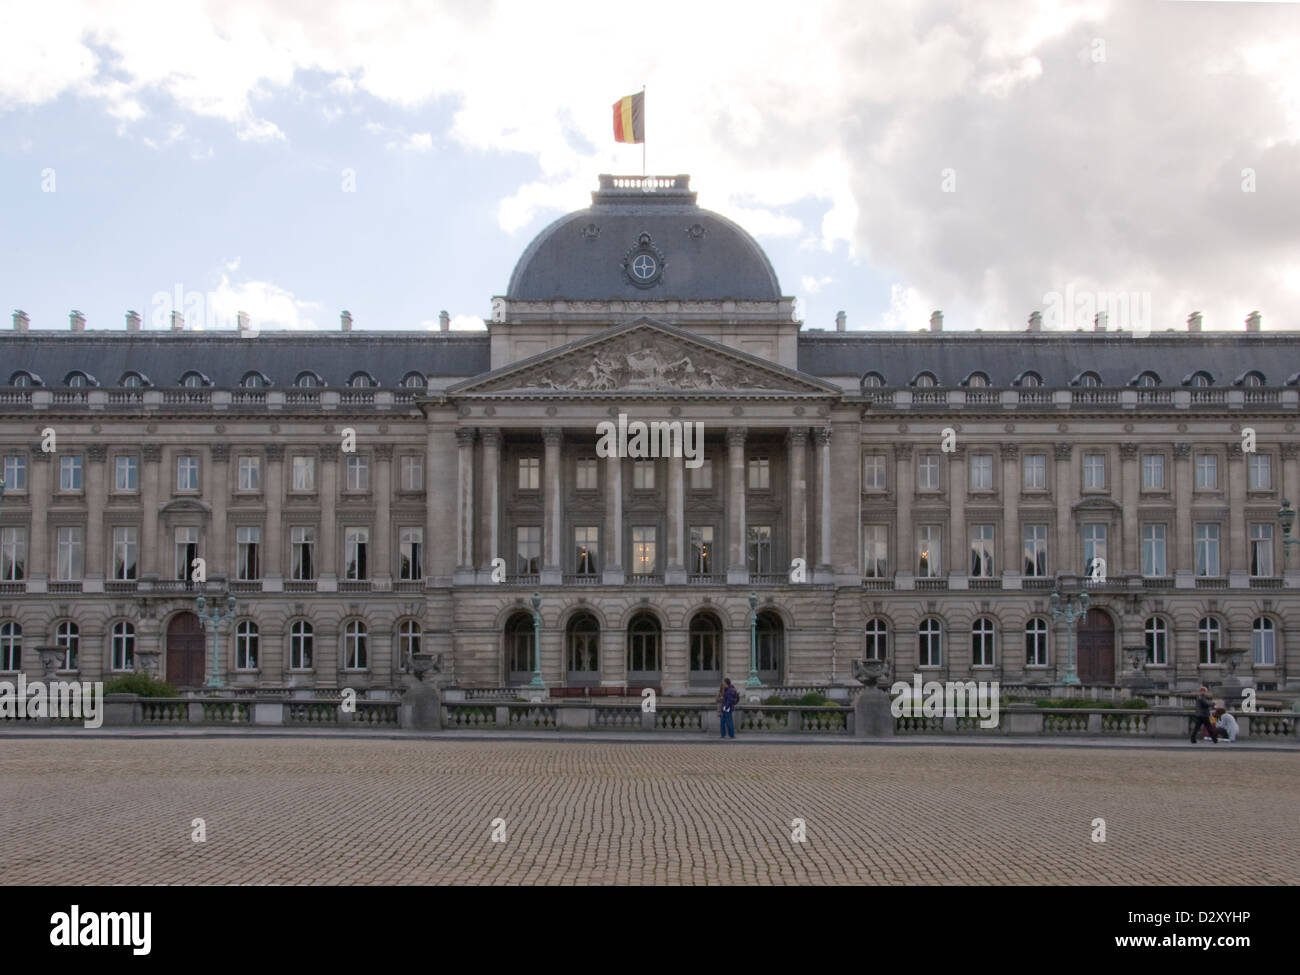 Main façade of the neoclassical Royal Palace of Brussels in Belgium. - Stock Image